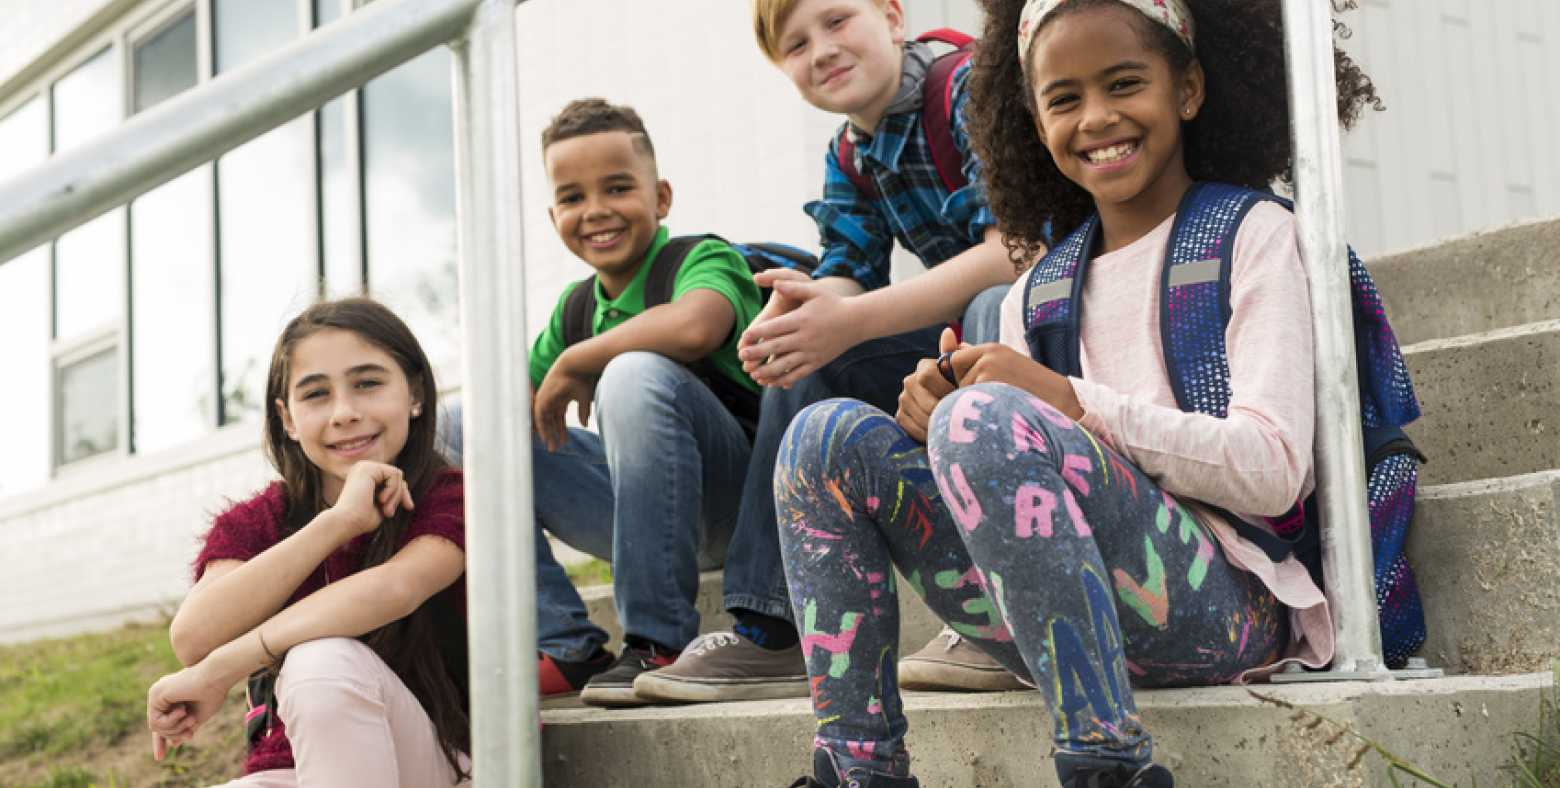 preteens at school sitting on stairs